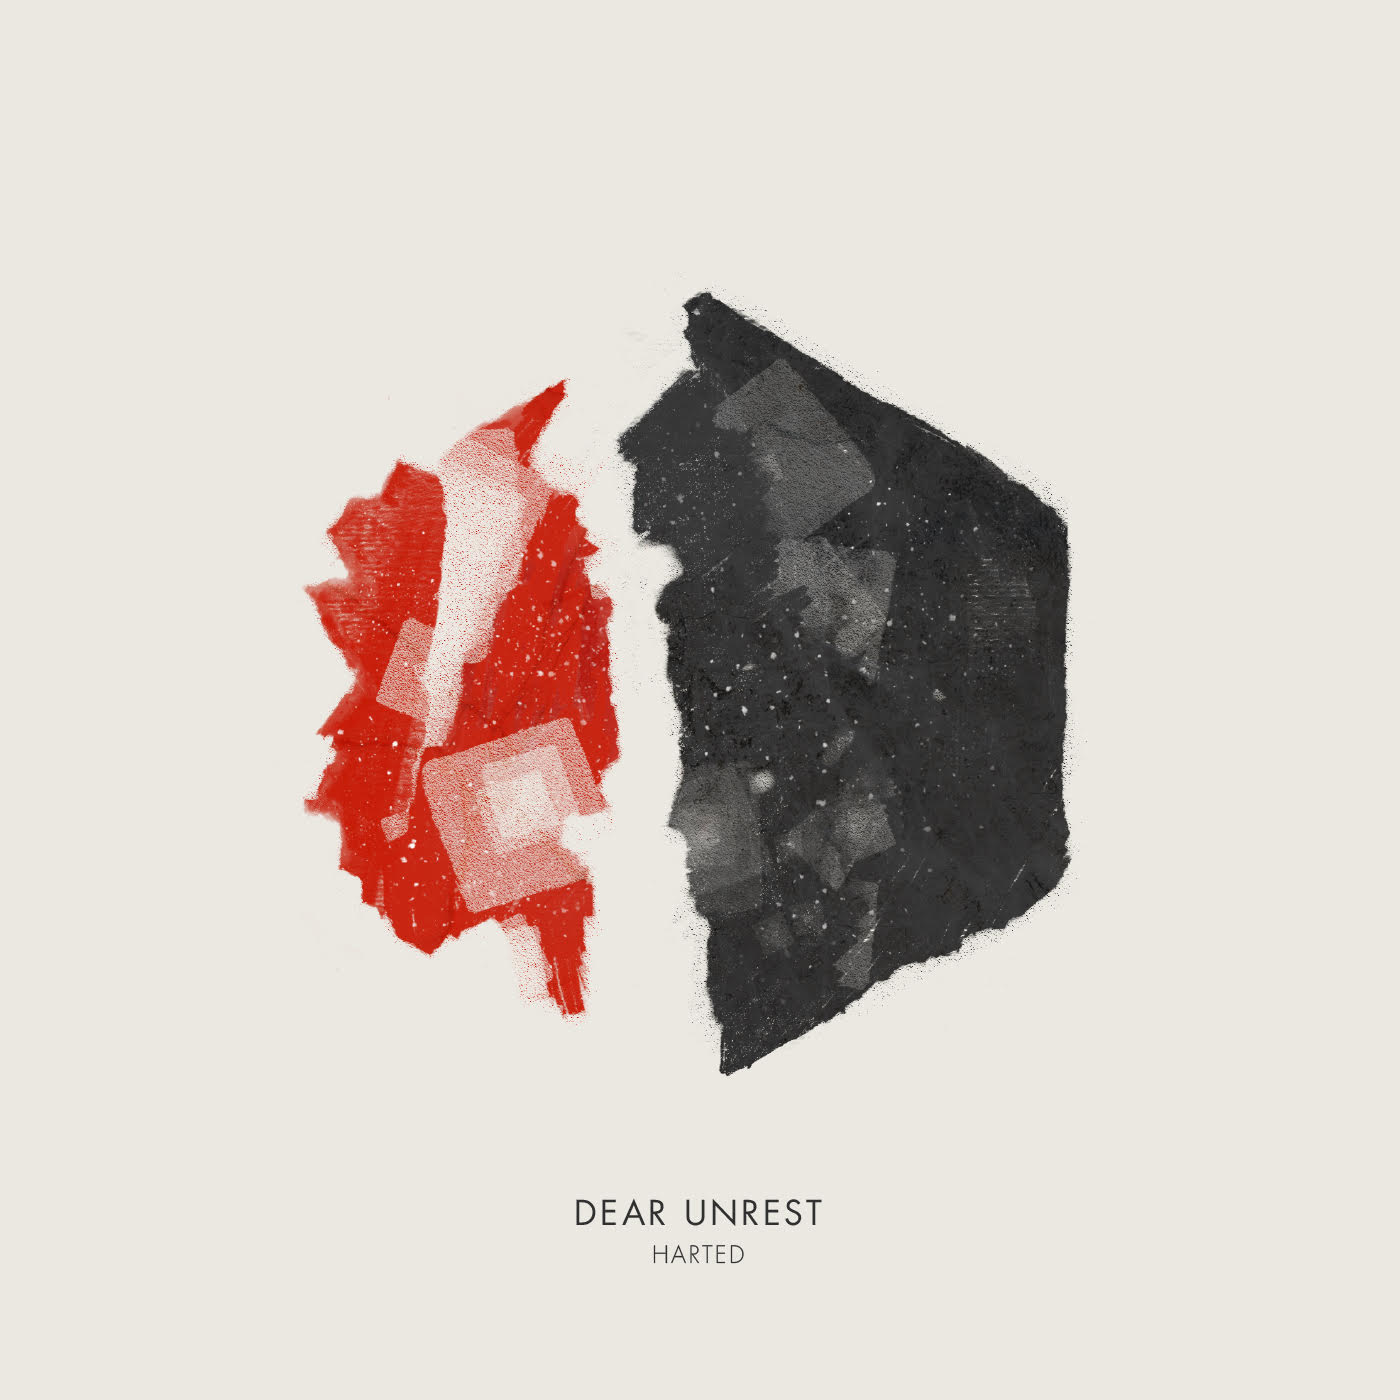 Harted - Dear Unrest